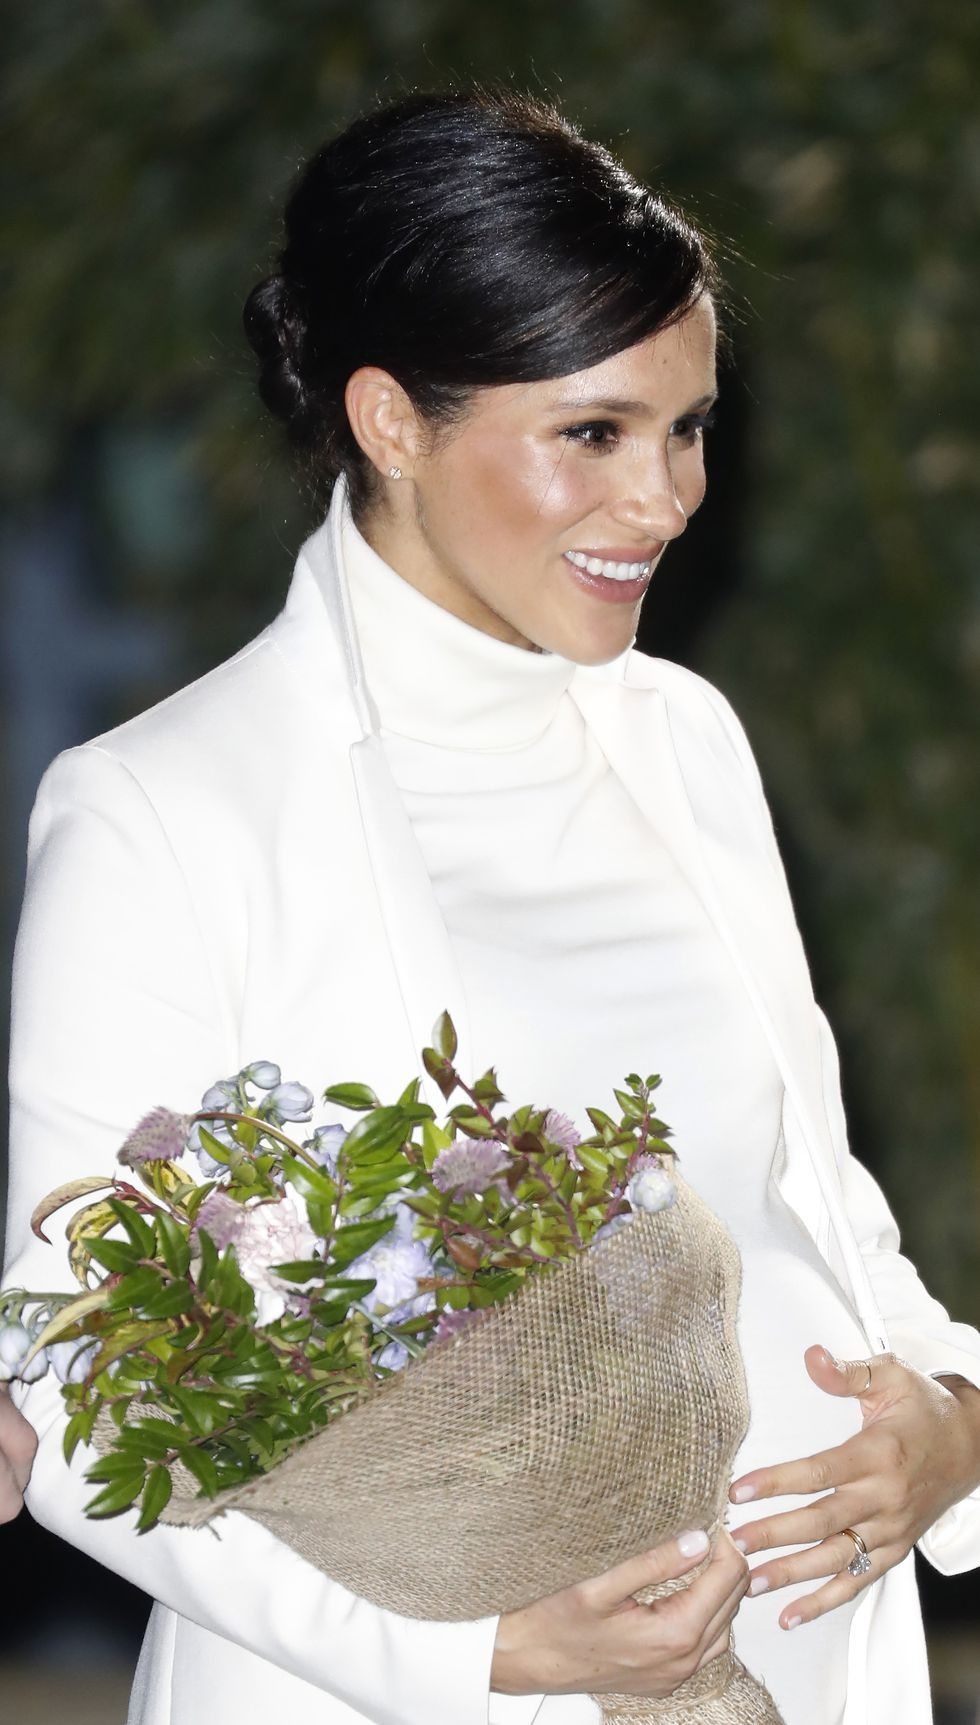 meghan-duchess-of-sussex-attends-a-gala-performance-of-the-news-photo-1129191244-1549998852.jpg